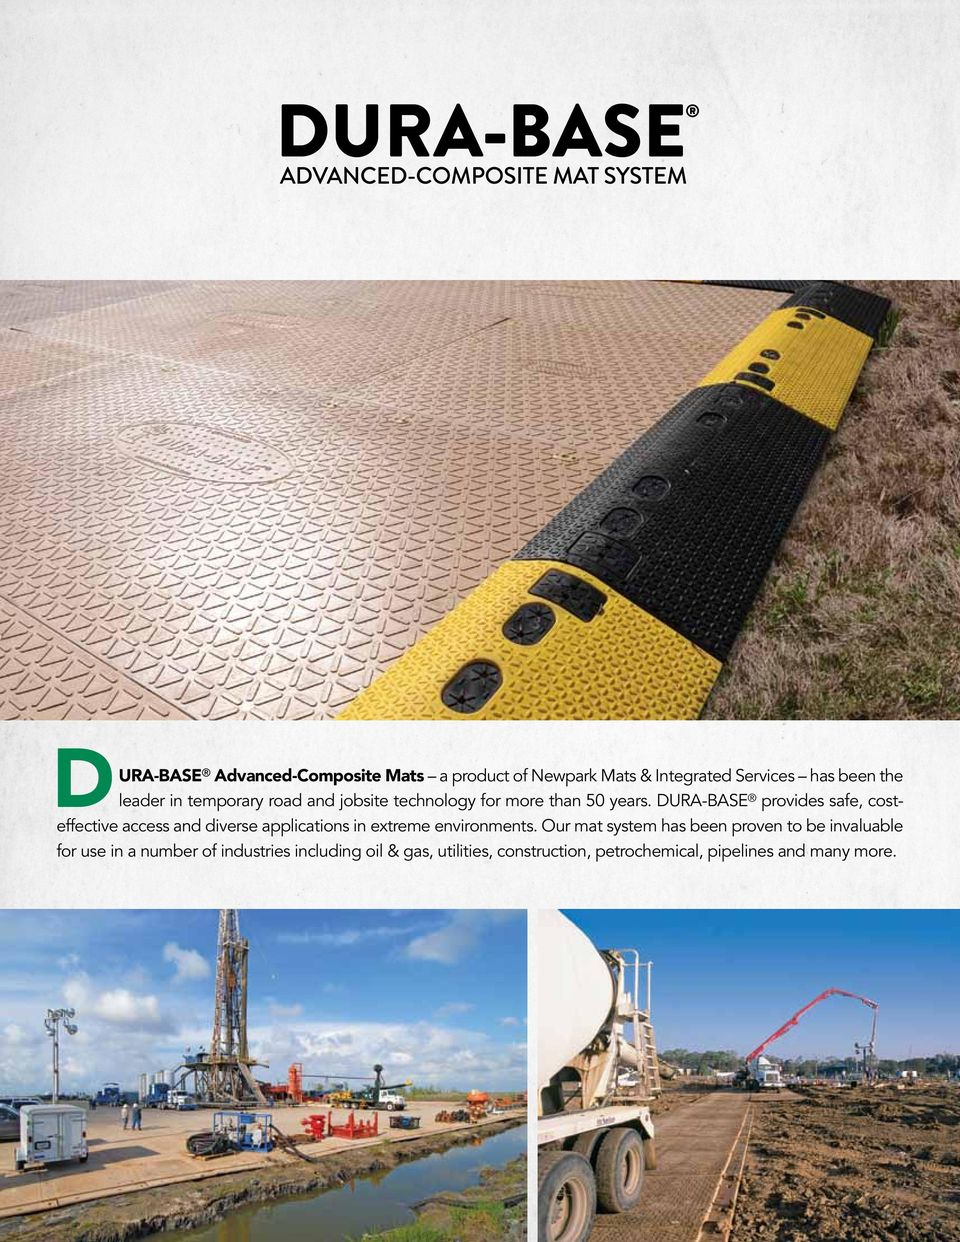 DURA-BASE provides safe, costeffective access and diverse applications in extreme environments.